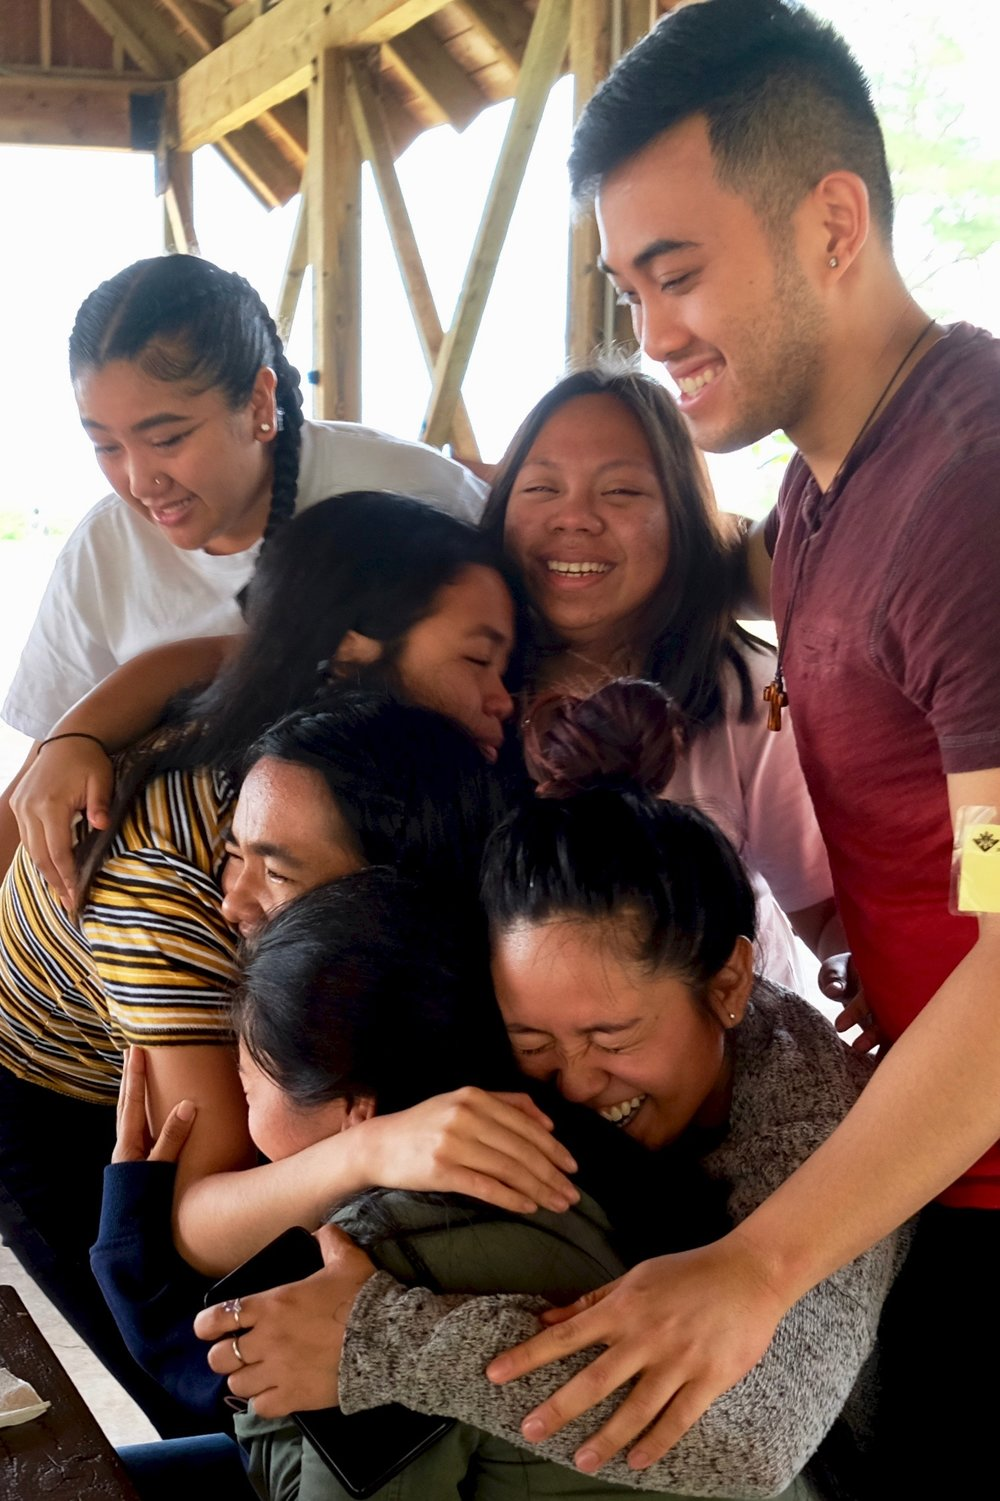 A barangay group hug to cement new bonds being made.Photo by J. Austria.